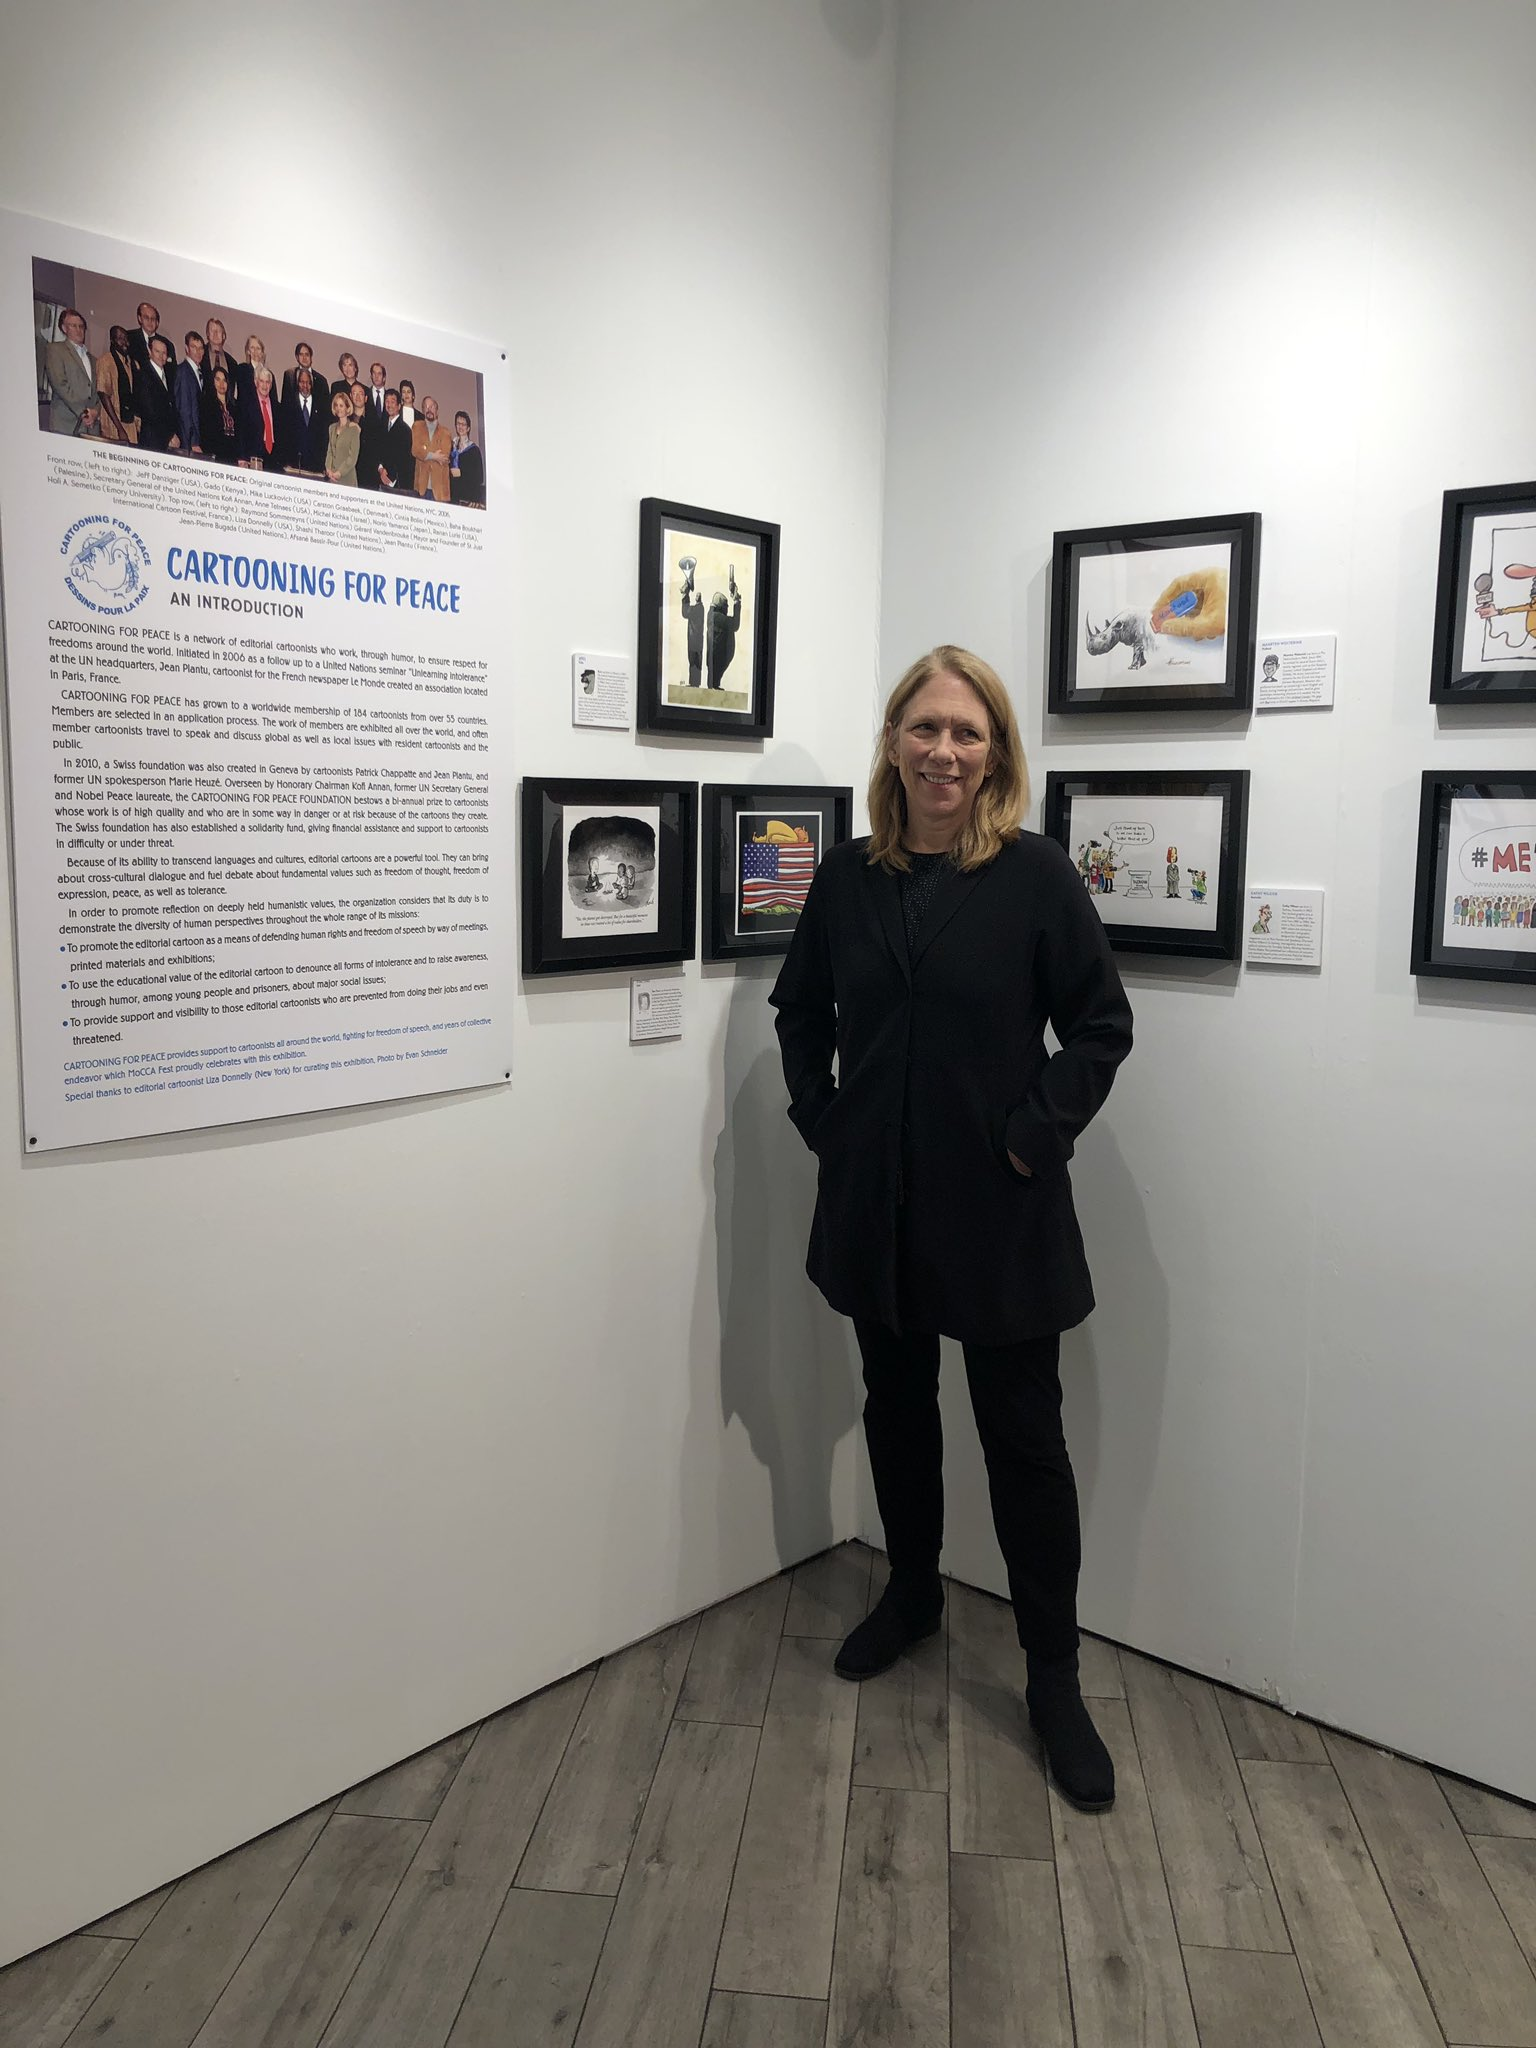 Loved curating this show! @CartooningPeace is dear to my heart, and being a member for 13 years, I now have so many friends around the world who are political cartoonists. Thanks to @CartooningPeace @MoCCAnyc and the @SOI128 AND the amazing artists! #MOCCAFest2019 #peace #freedom https://t.co/zV3SFfGLHX